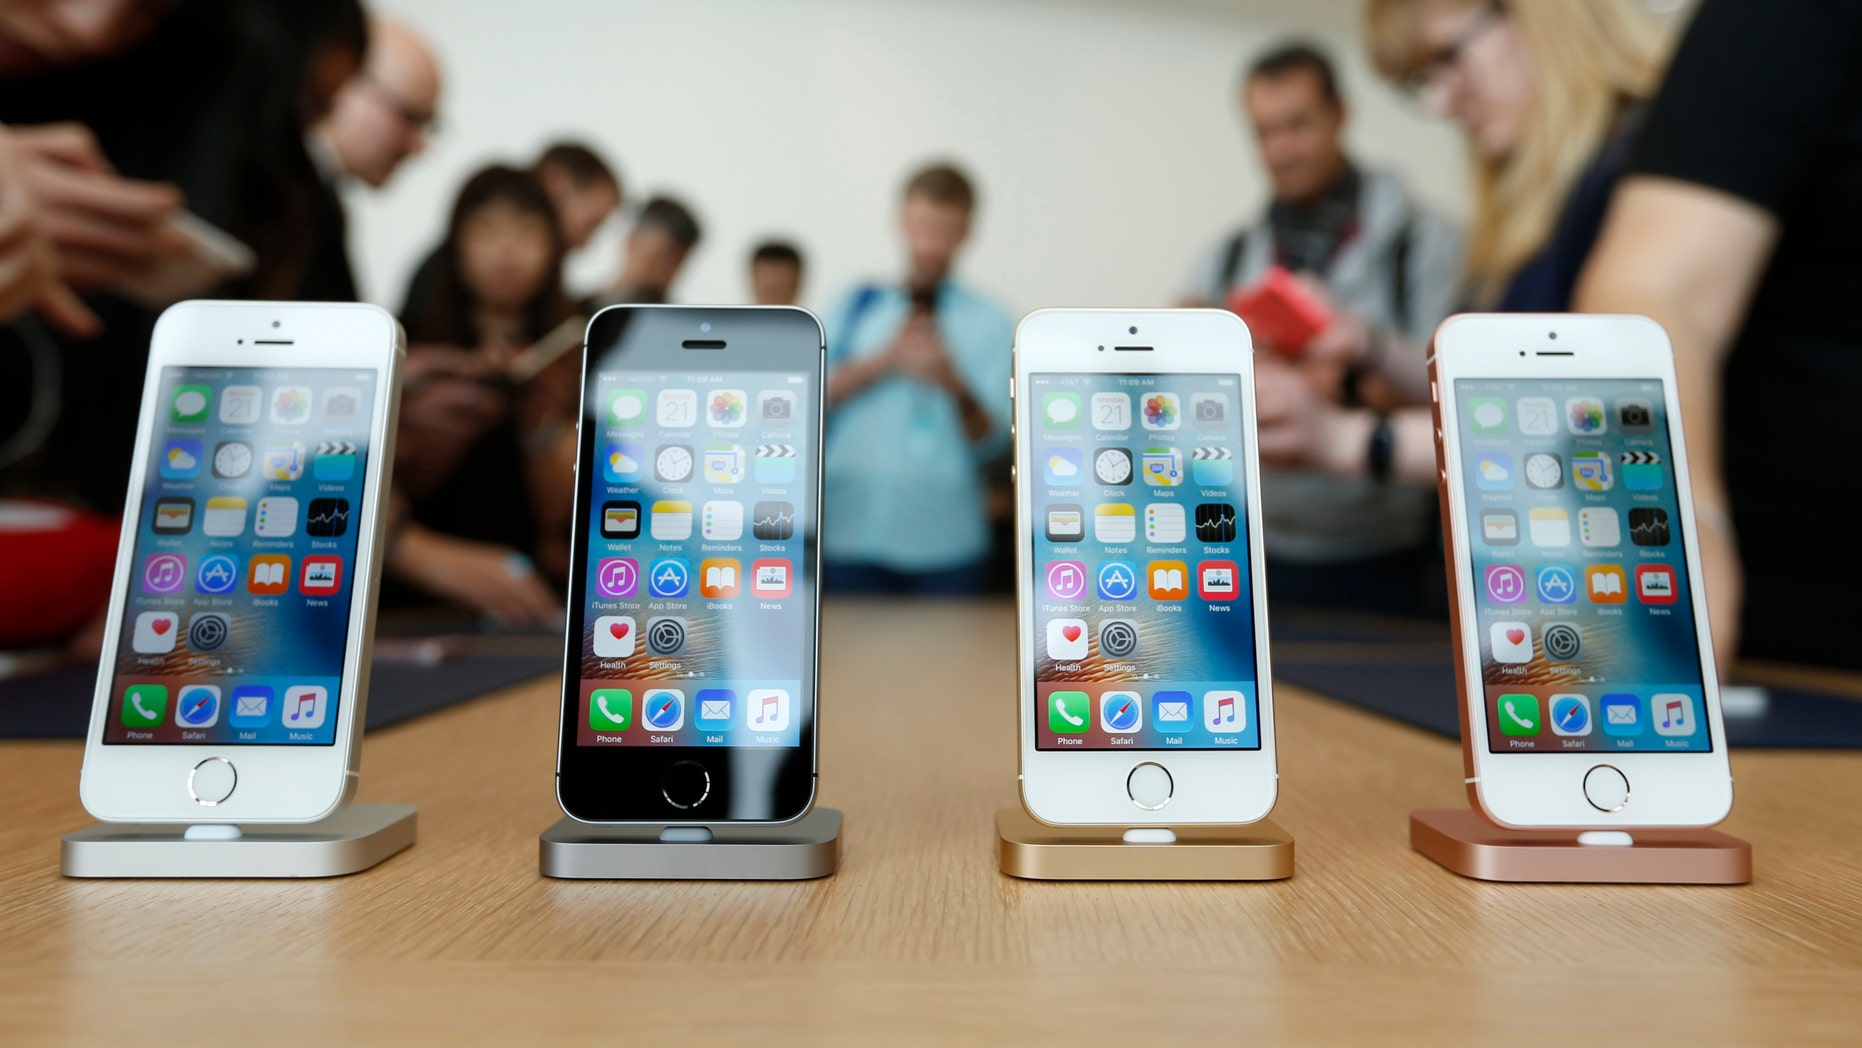 The new iPhone SE is seen on display during an event at the Apple headquarters in Cupertino, Calif. March 21, 2016. (REUTERS/Stephen Lam)